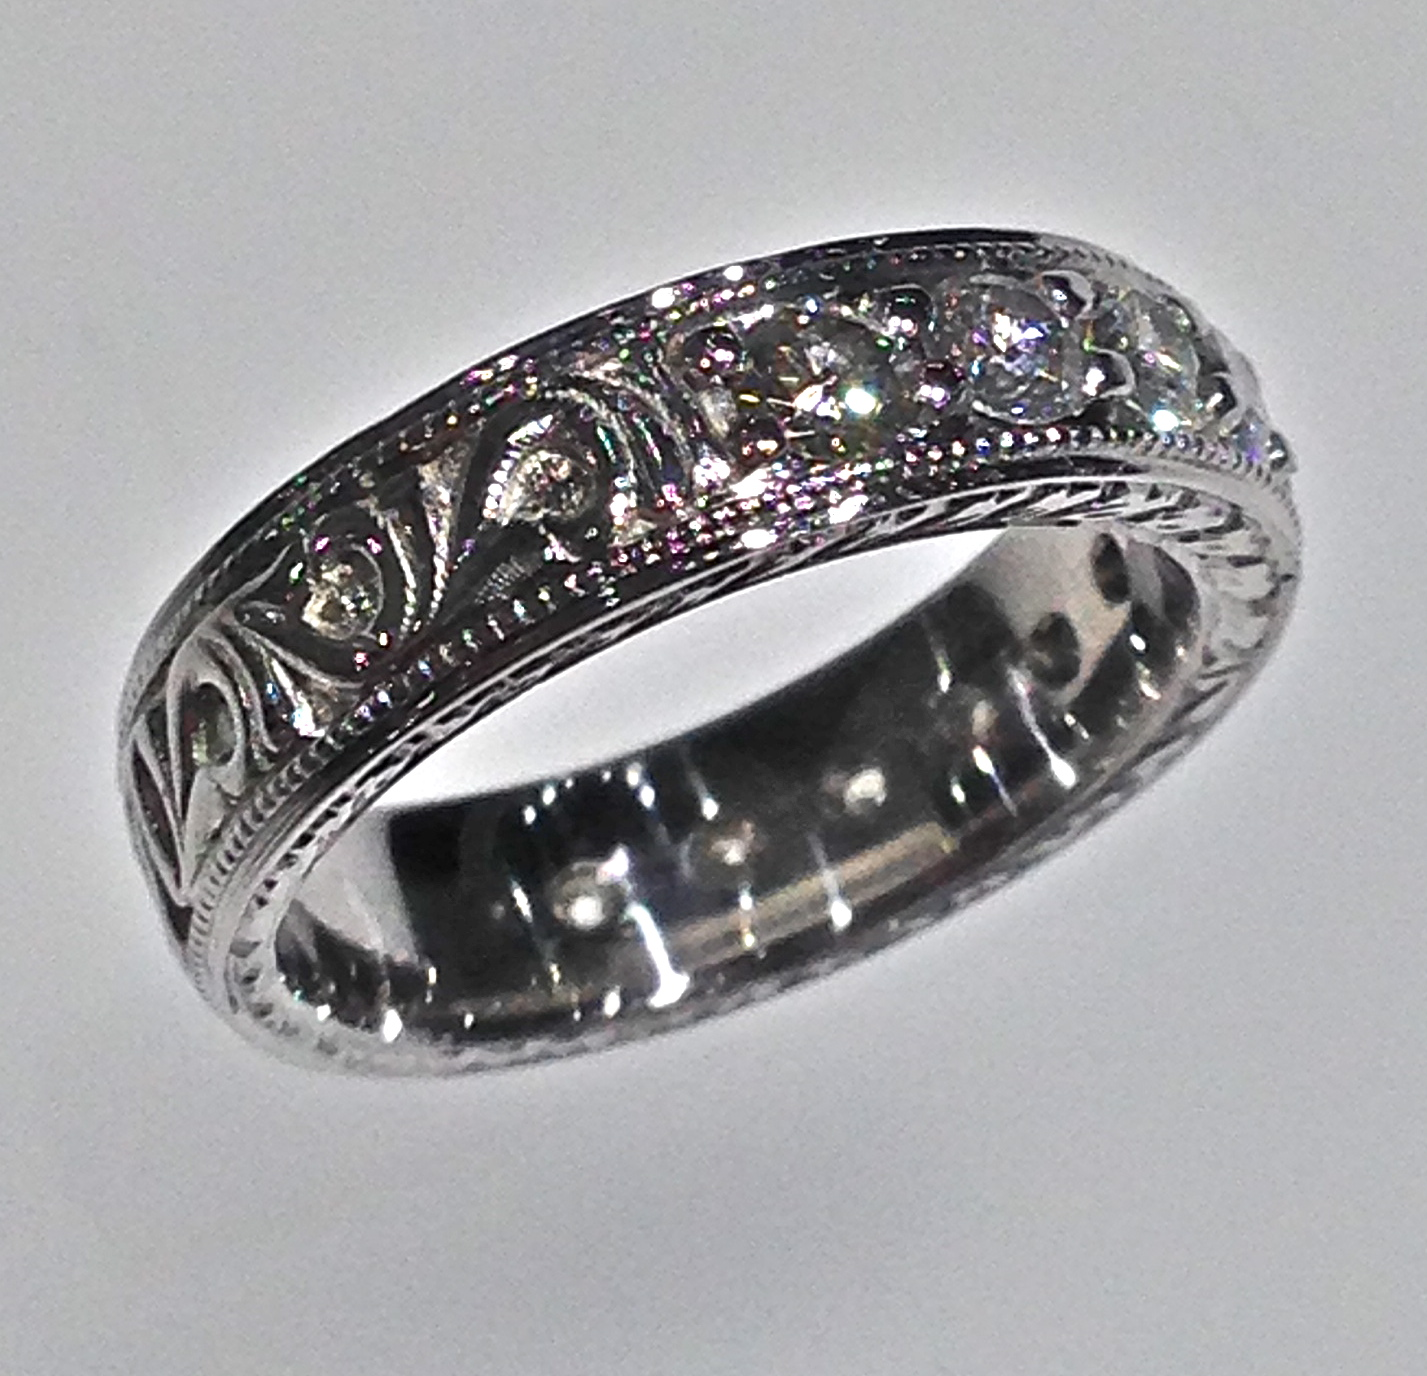 wedding bands antique style wedding bands Craft Revival Jewelers diamond wedding band antique wedding band engraved band